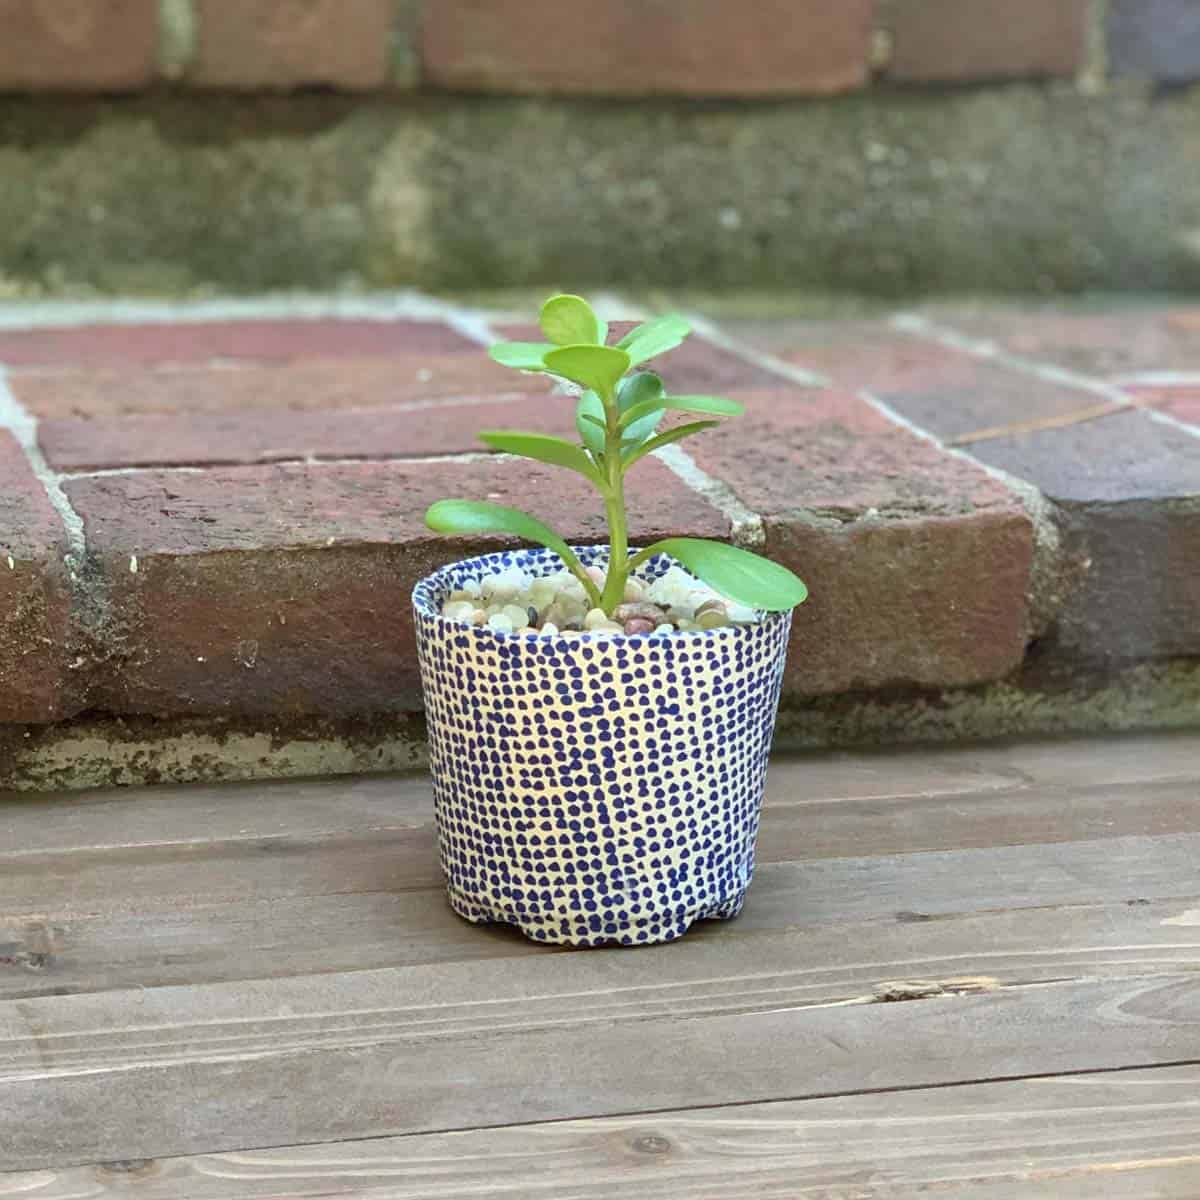 DIY durable cement planter made from a plastic pot on wood boards